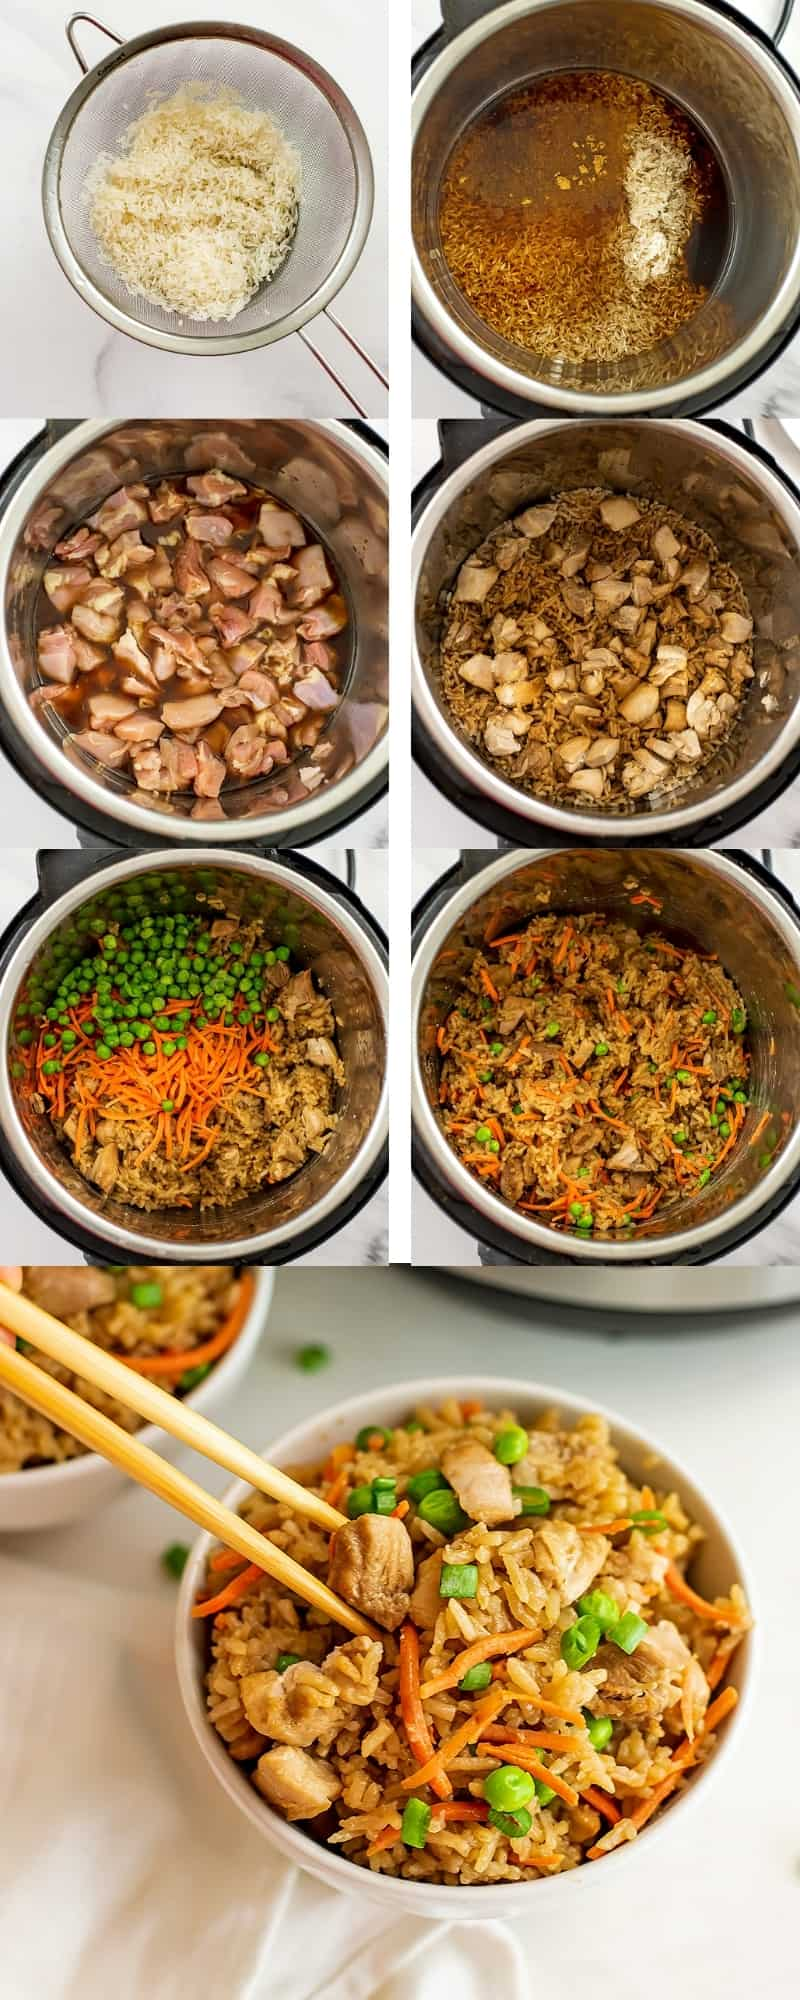 Steps to make instant pot chicken fried rice.